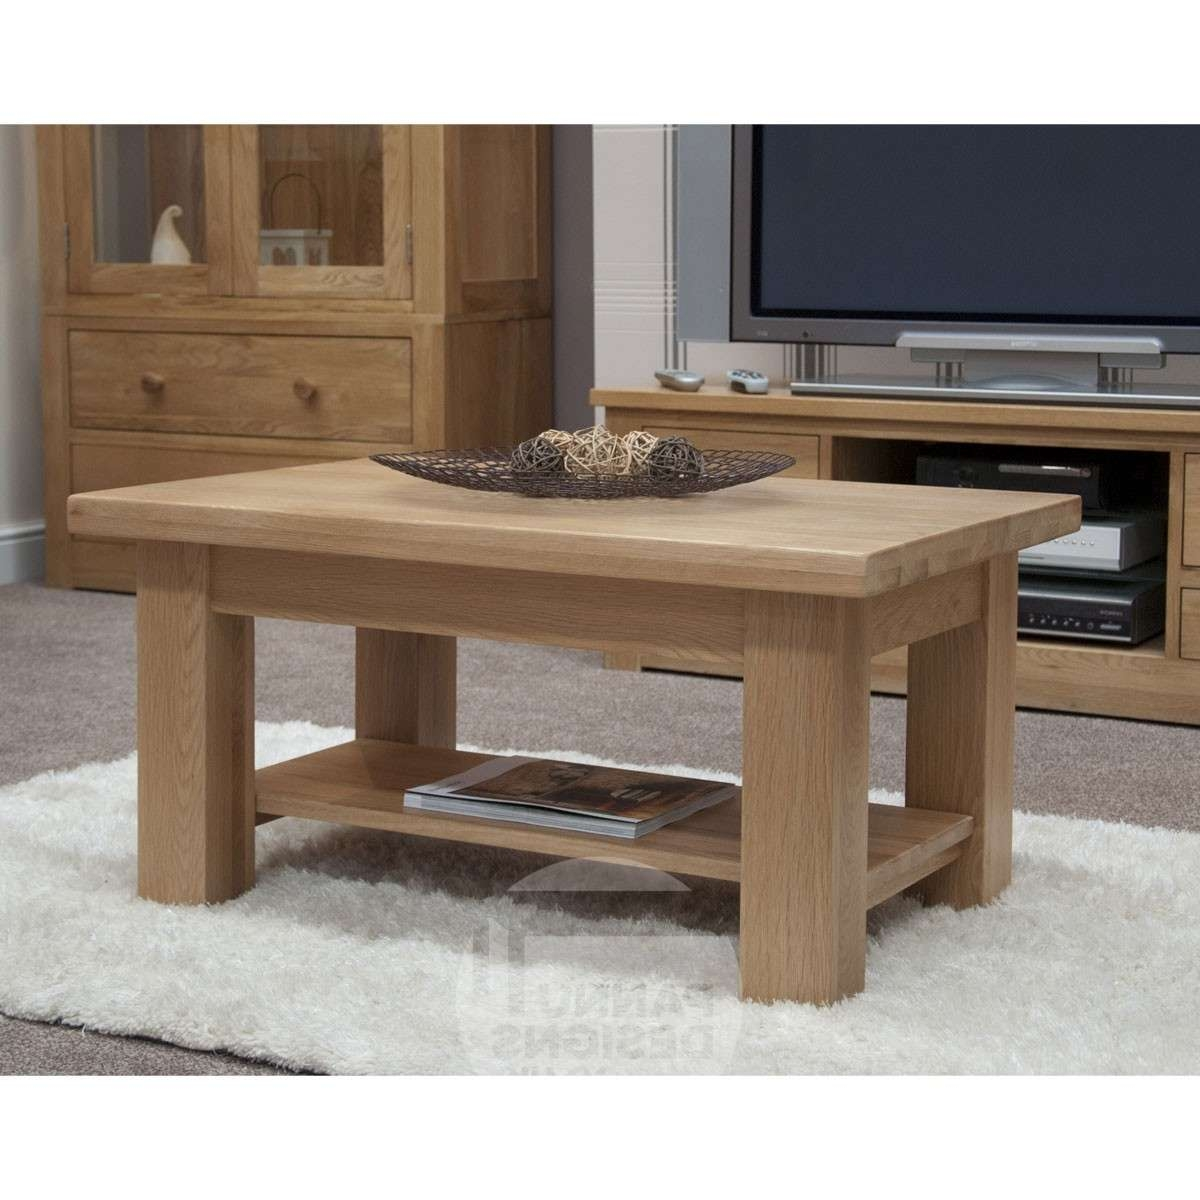 Most Recently Released Torino Coffee Tables Intended For Torino Oak 3 X 2 Coffee Table (View 10 of 20)